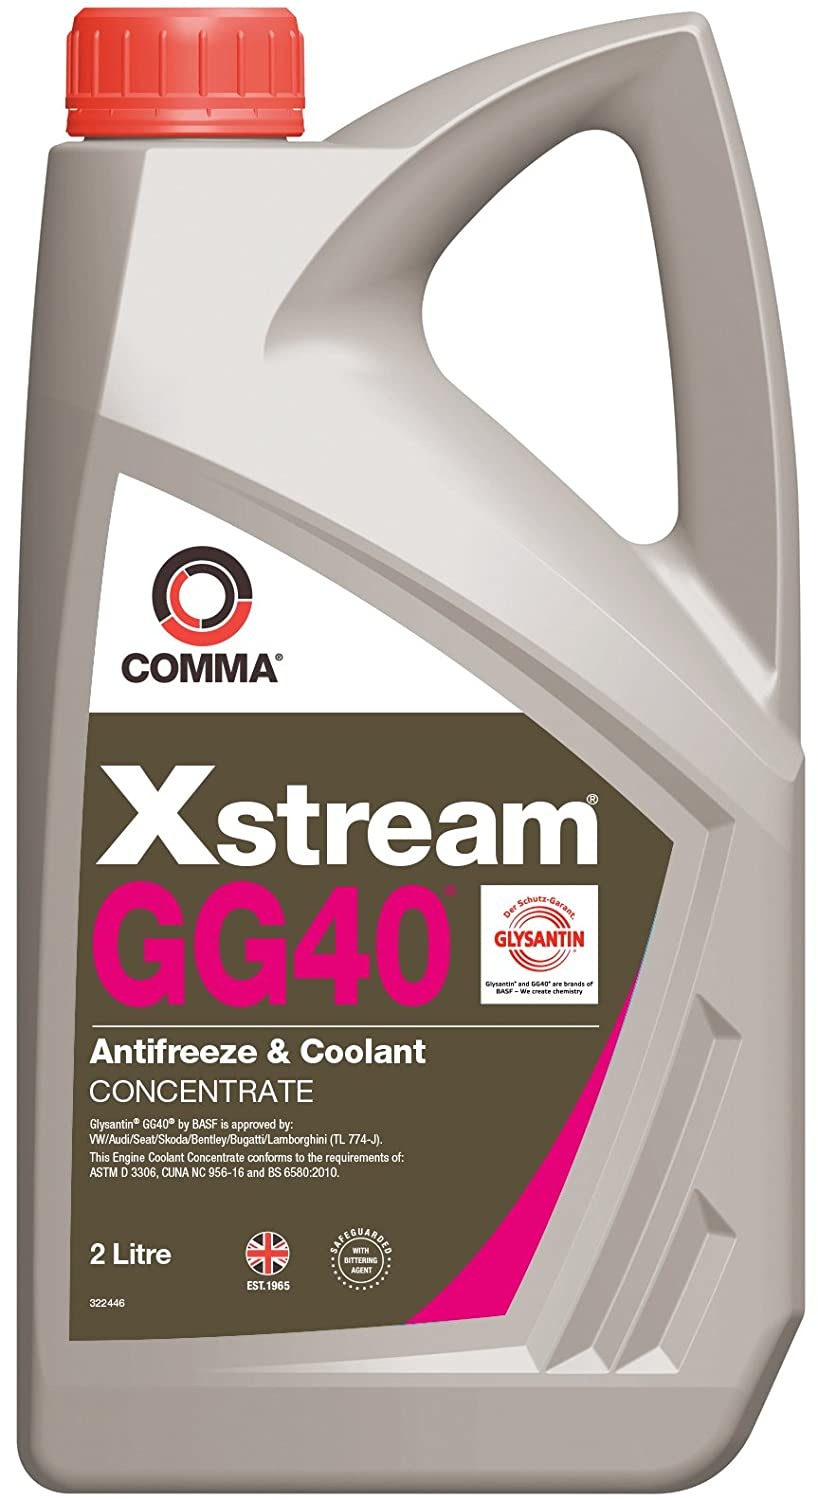 Comma XSGG402L Xstream Concentrated Antifreeze and Coolant, 2 Liters